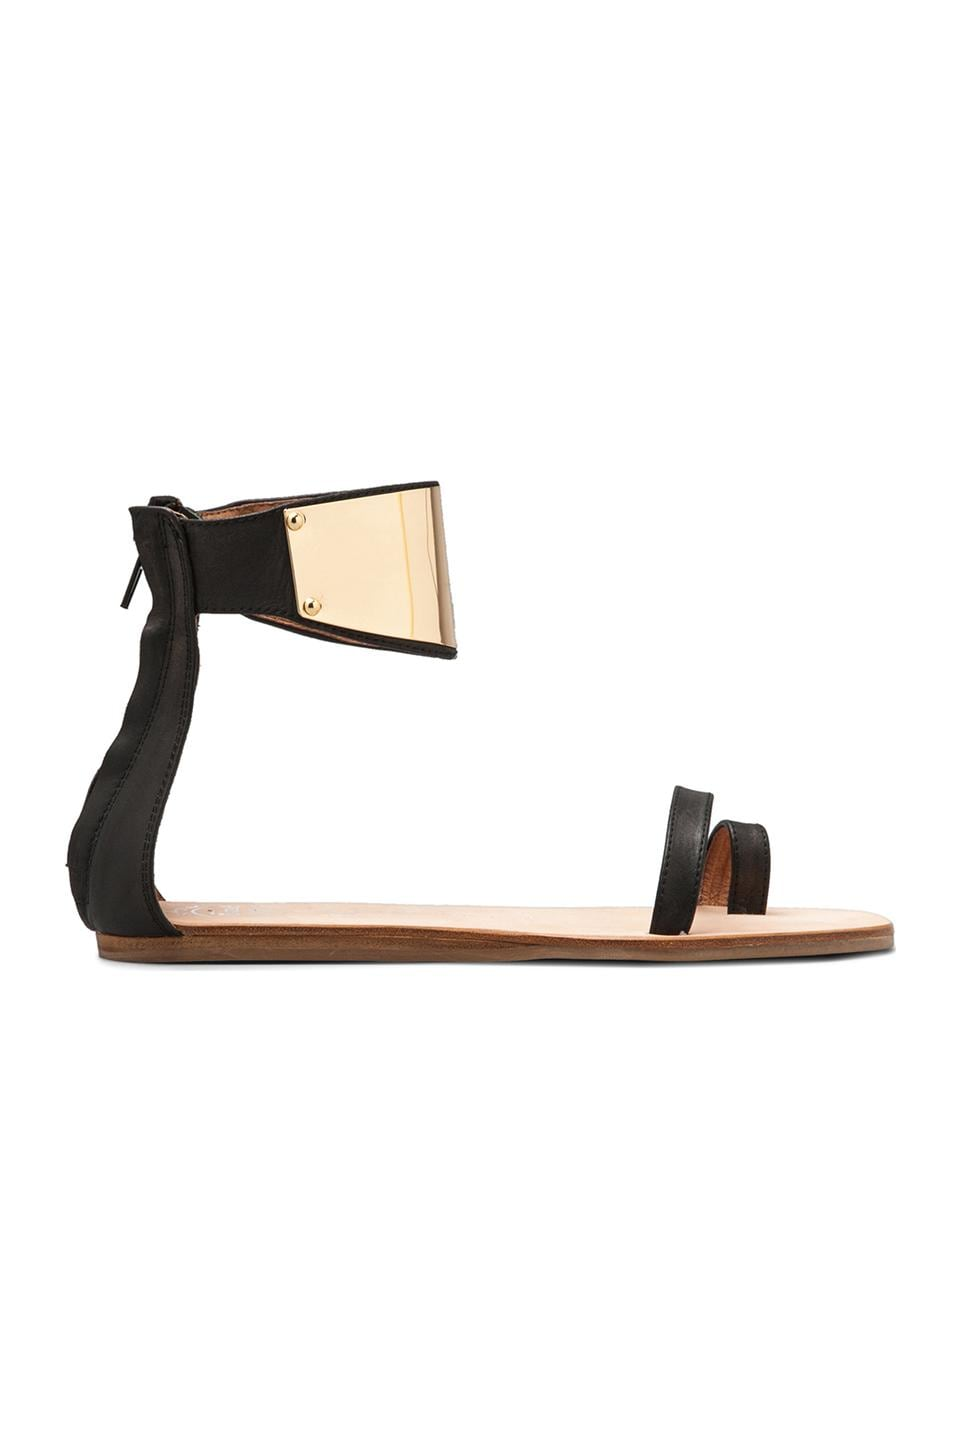 Jeffrey Campbell Limbo in Black Leather Gold